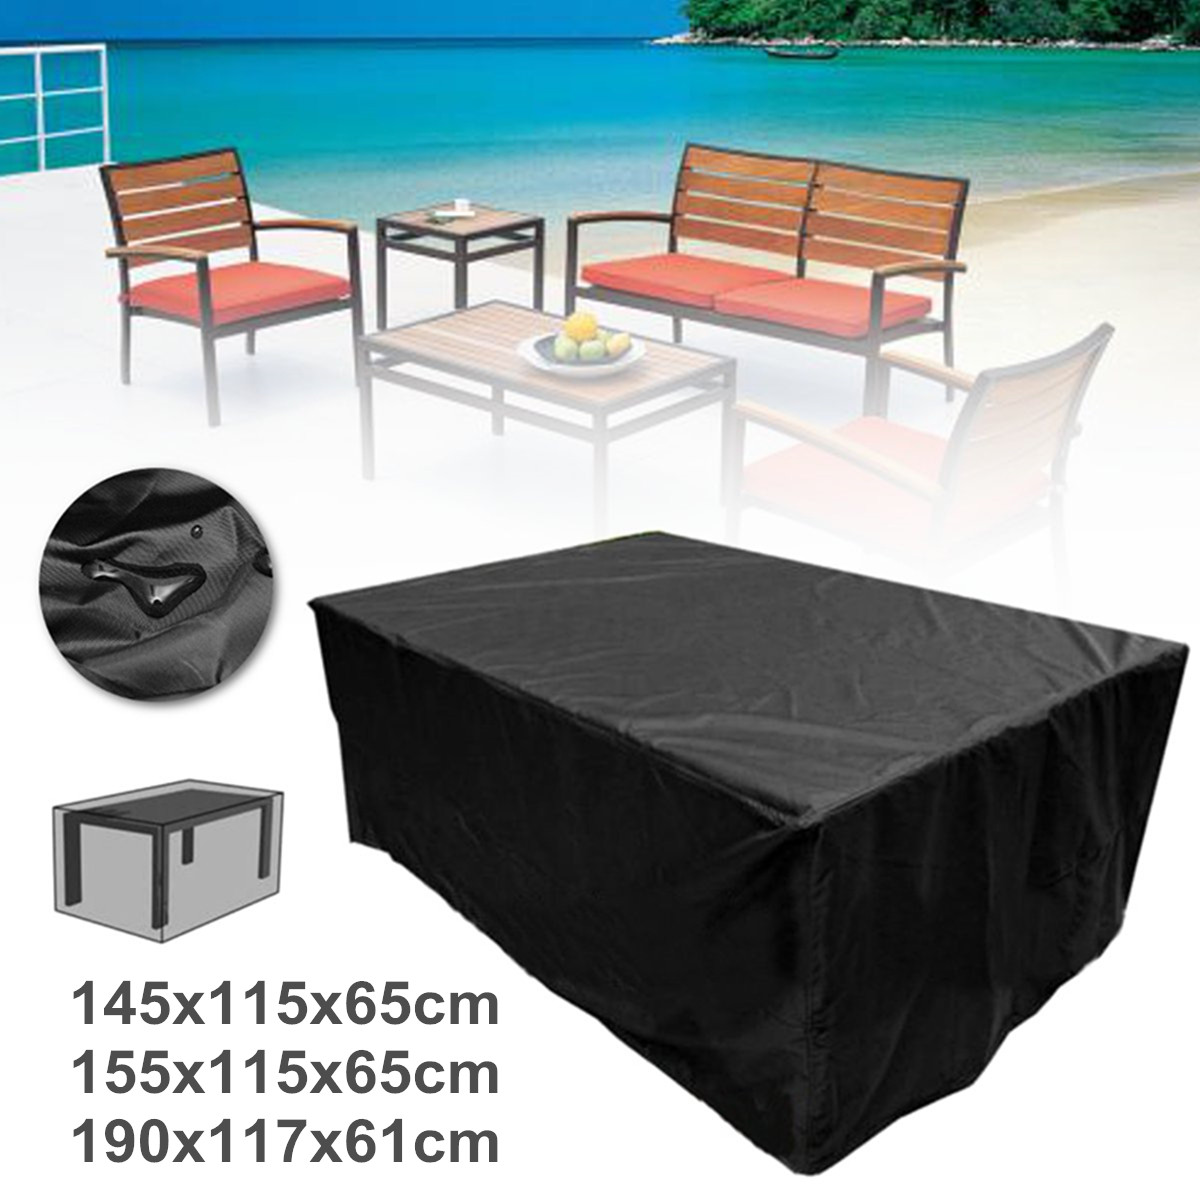 Waterproof Polyester Patio Table Cover 3 Sizes All-Purpose Chair Set Outdoor Furniture Cover Protective Dust Covers Garden PatioWaterproof Polyester Patio Table Cover 3 Sizes All-Purpose Chair Set Outdoor Furniture Cover Protective Dust Covers Garden Patio